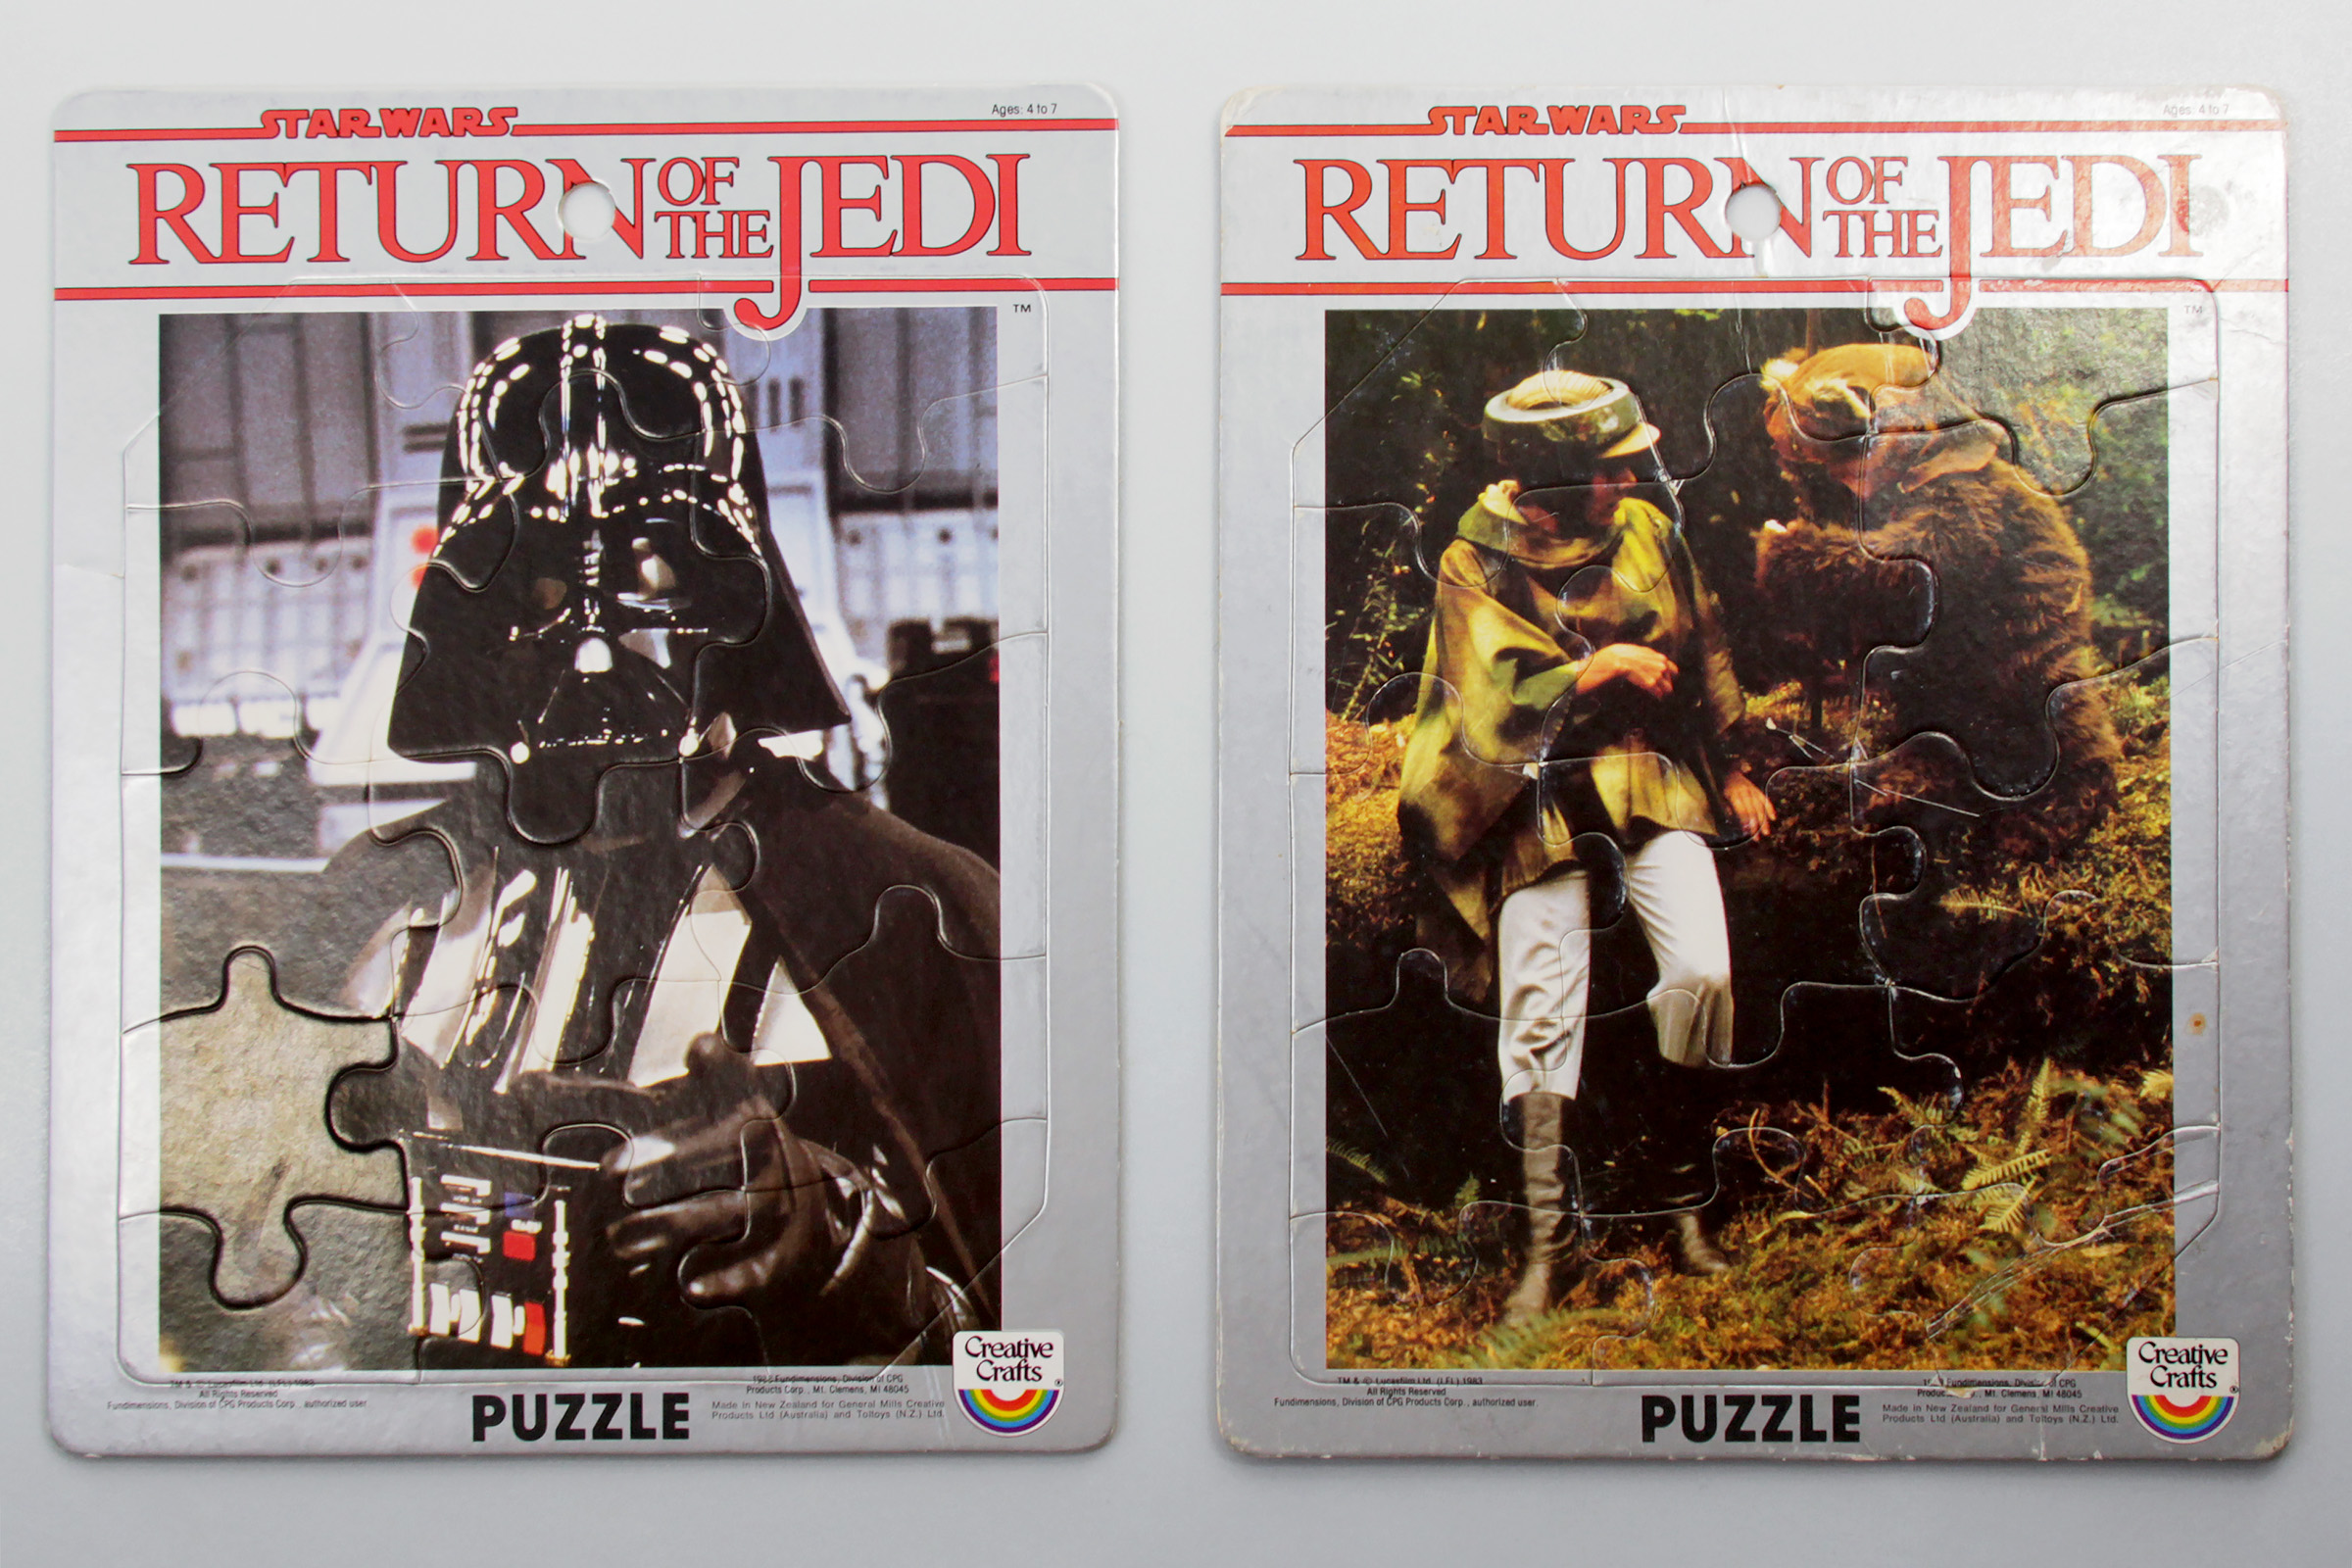 Creative Crafts/Toltoys Return of the Jedi Jigsaw Puzzles